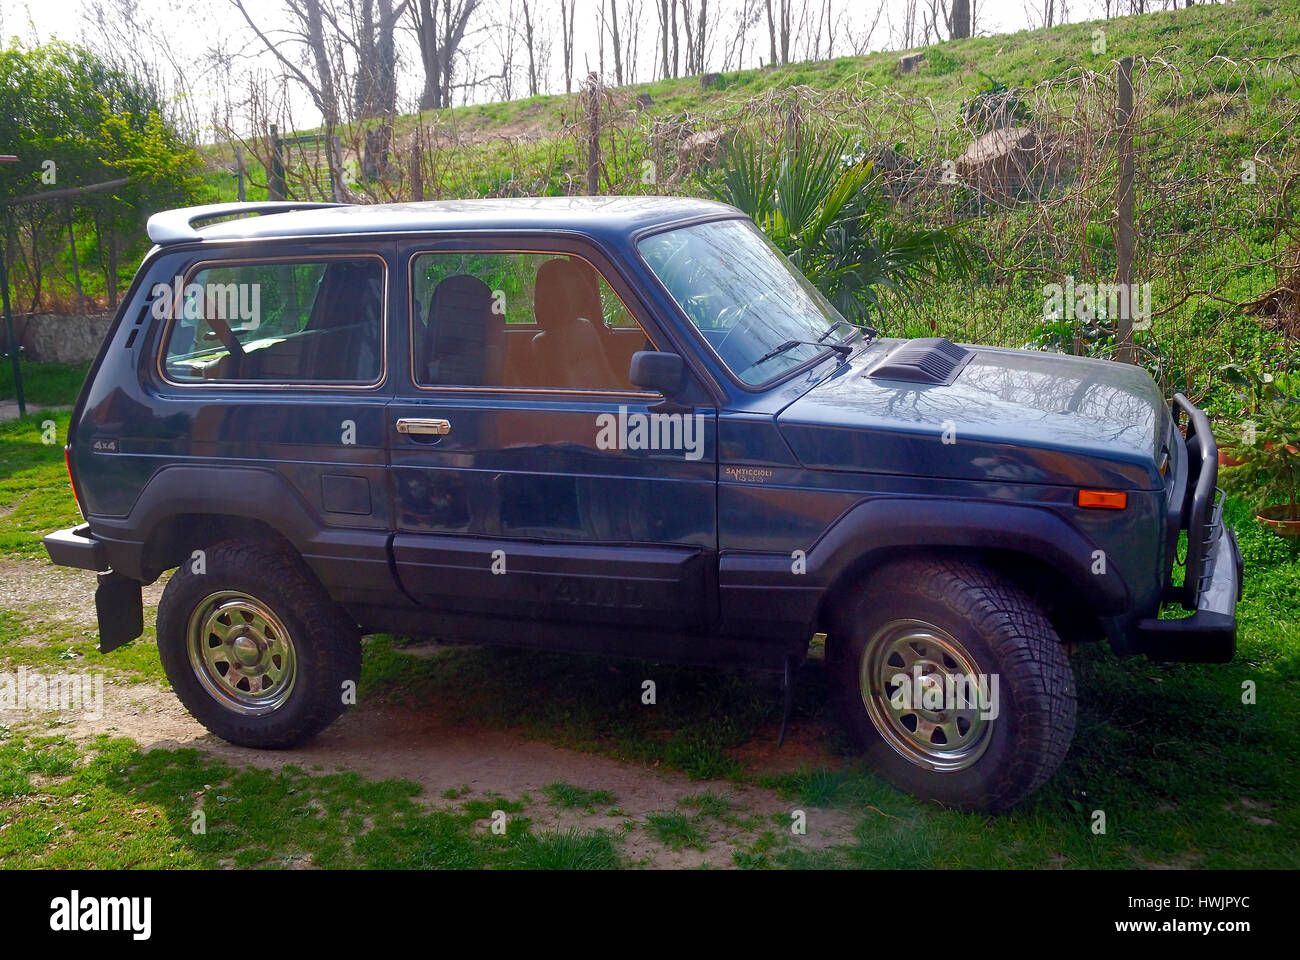 The Lada 4x4 Formerly Called The Lada Niva Is An Off Road Vehicle Stock Photo Alamy